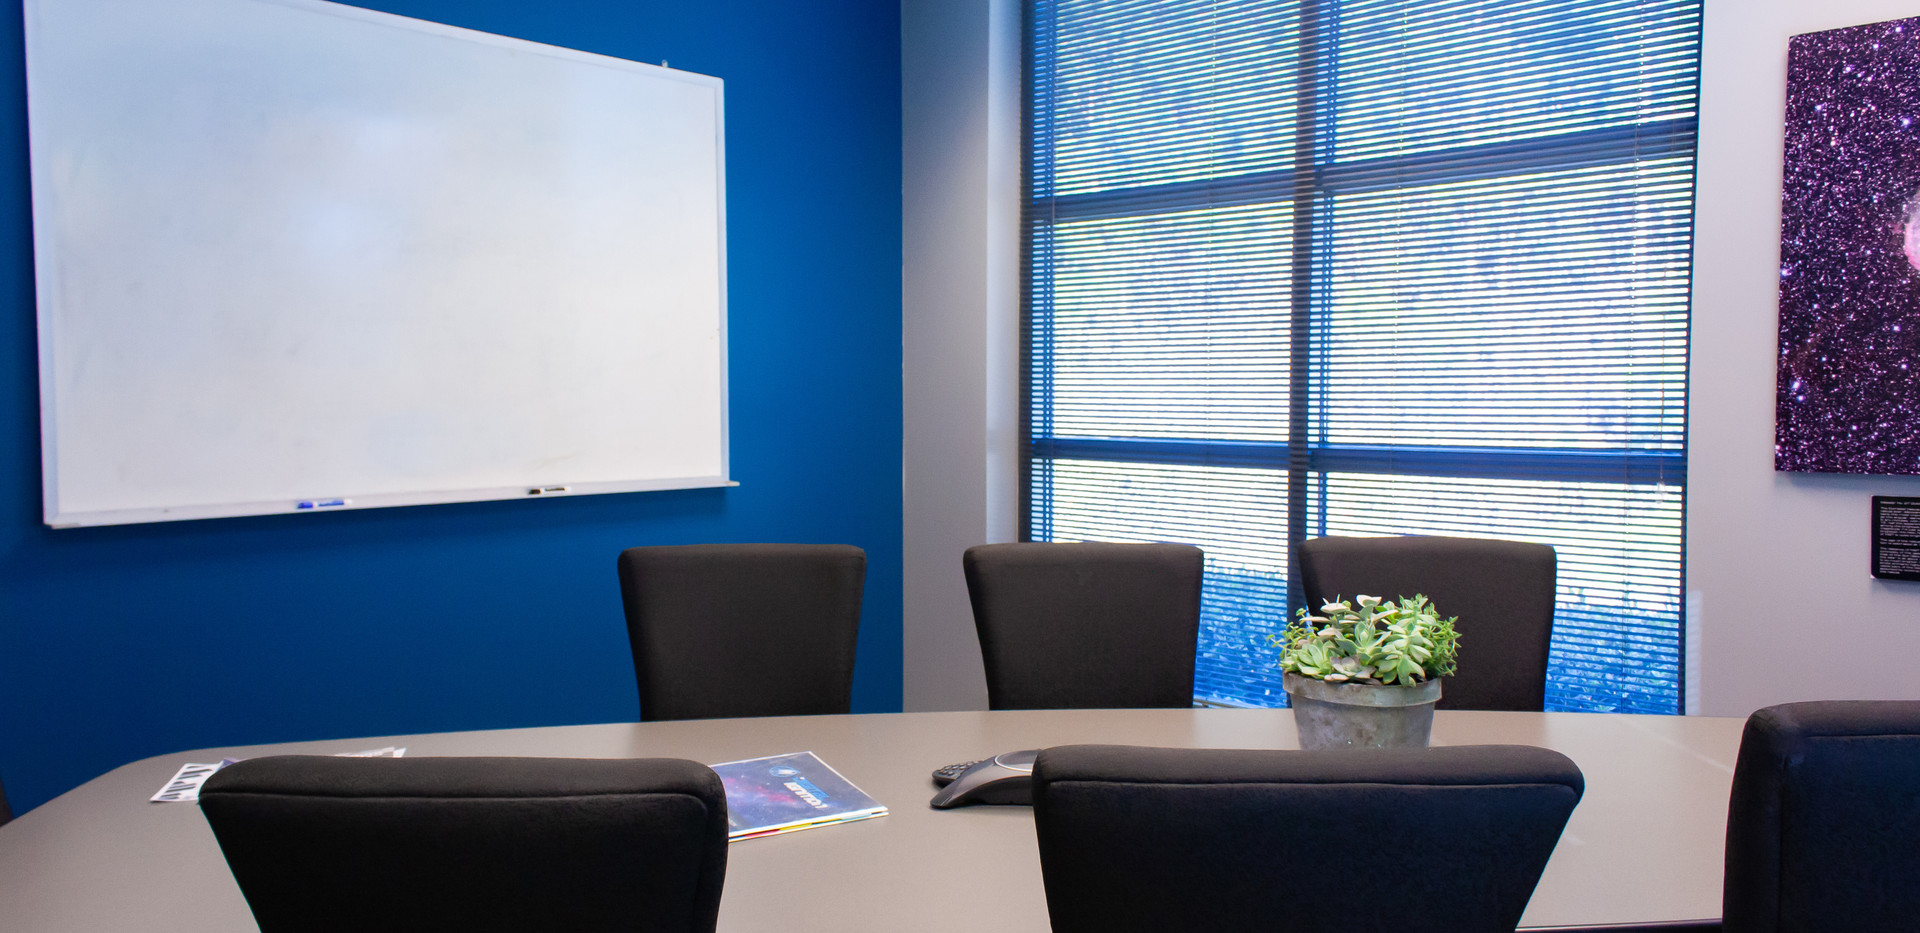 DI-Conference-Room-For-Rent-Image-3.jpg